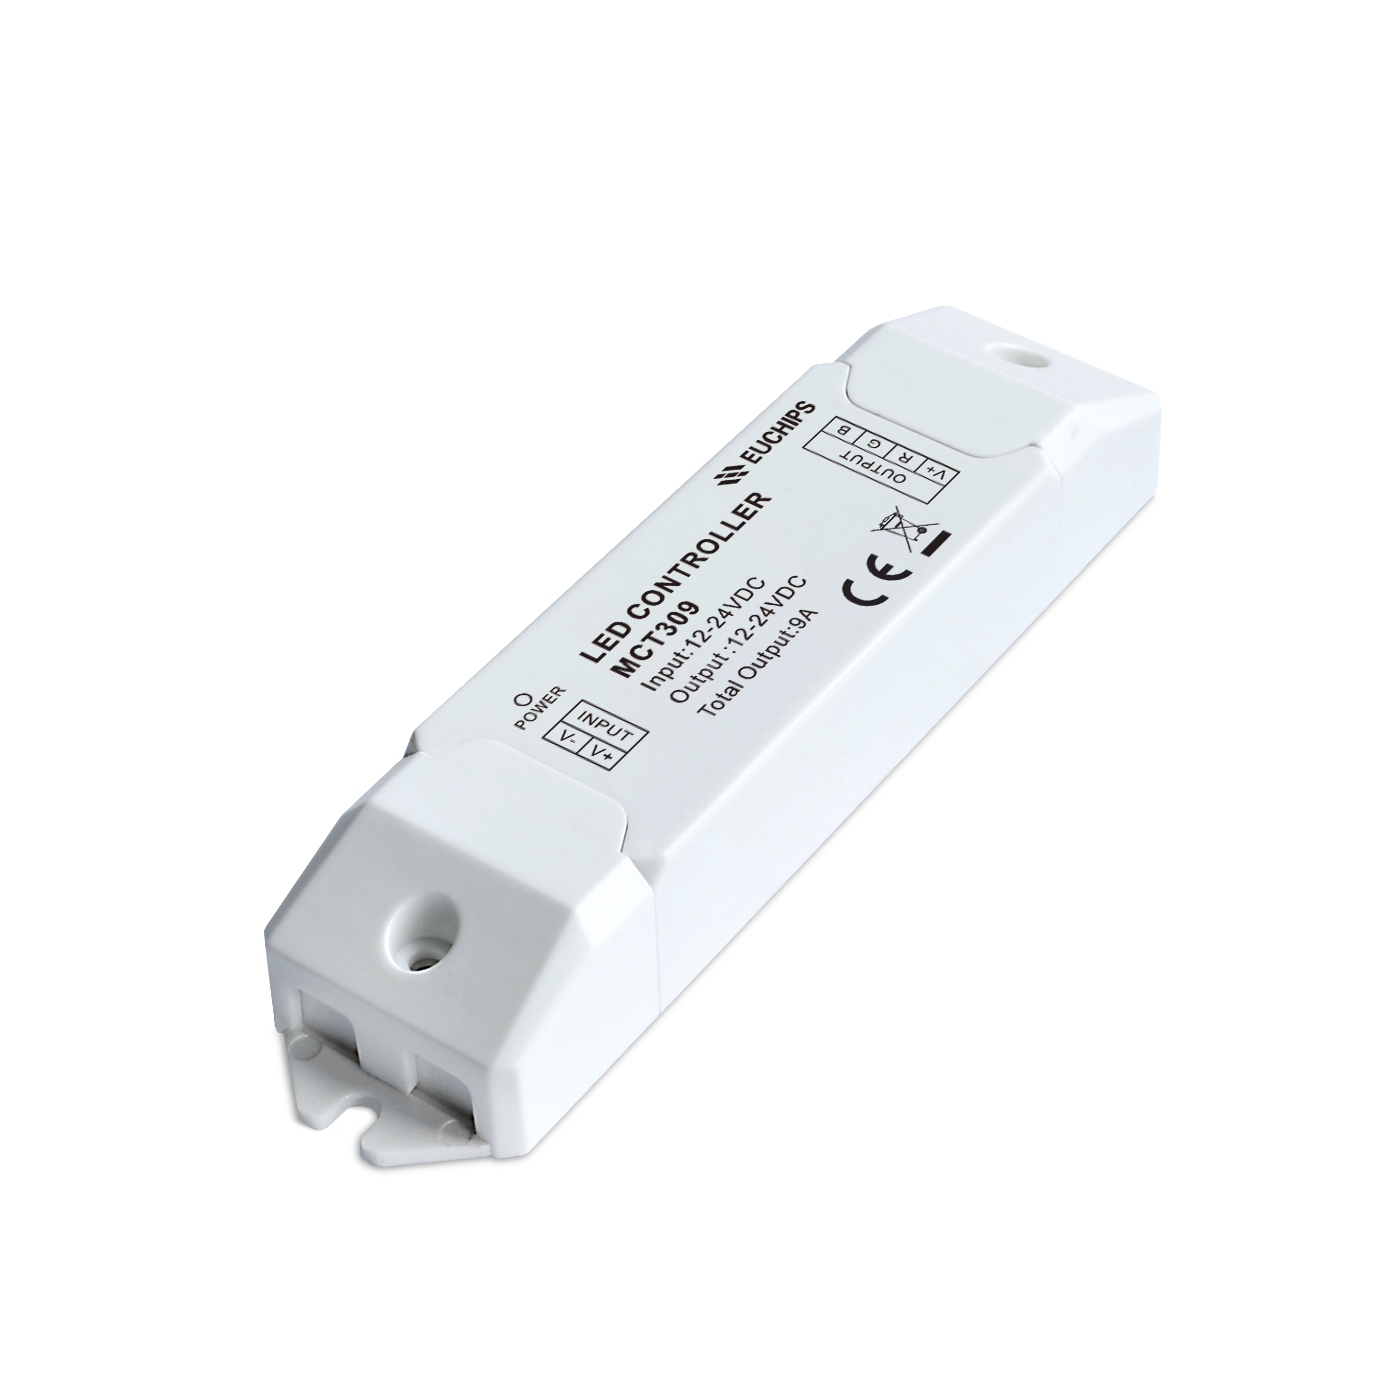 Supply OEM/ODM Warehouse High Bay Fixture - 3A*3ch 2.4GHz 12-24VDC Wireless Controller MCT309 – Euchips